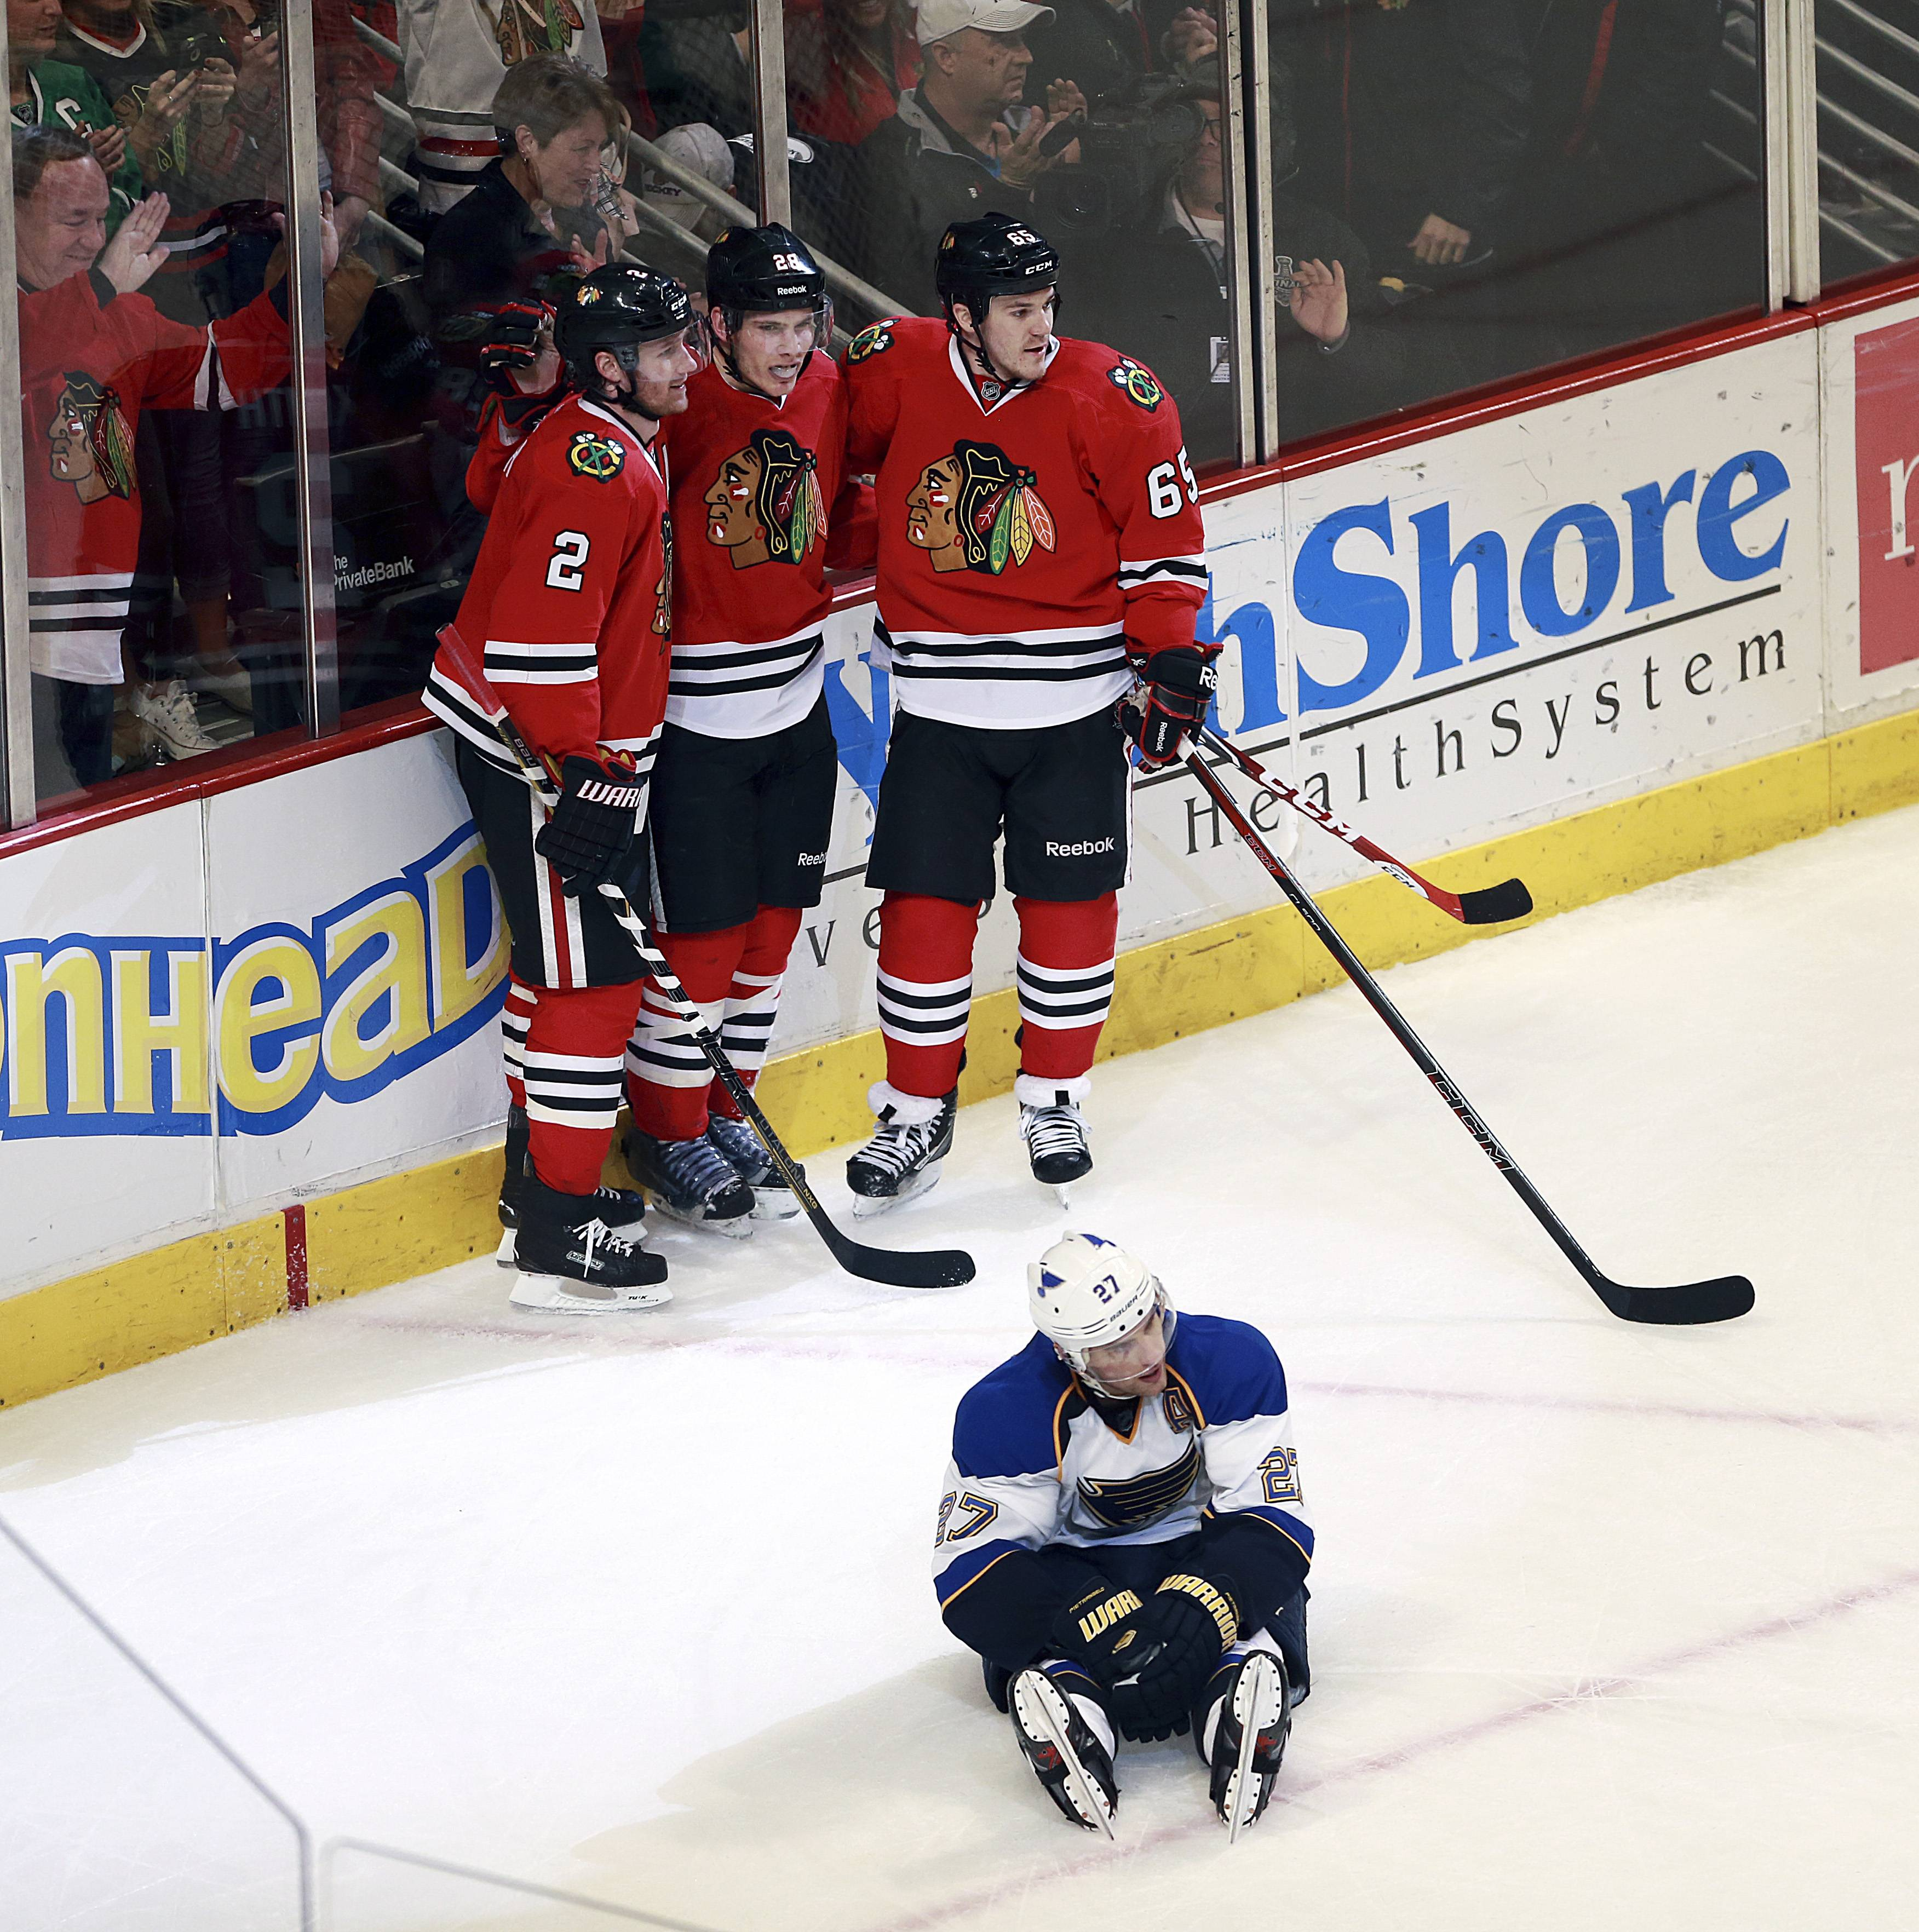 Duncan Keith, left, Ben Smith, center, and Andrew Shaw celebrate after Smith's empty net goal against the Blues on Sunday. It marked the third straight game Smith scored a goal.